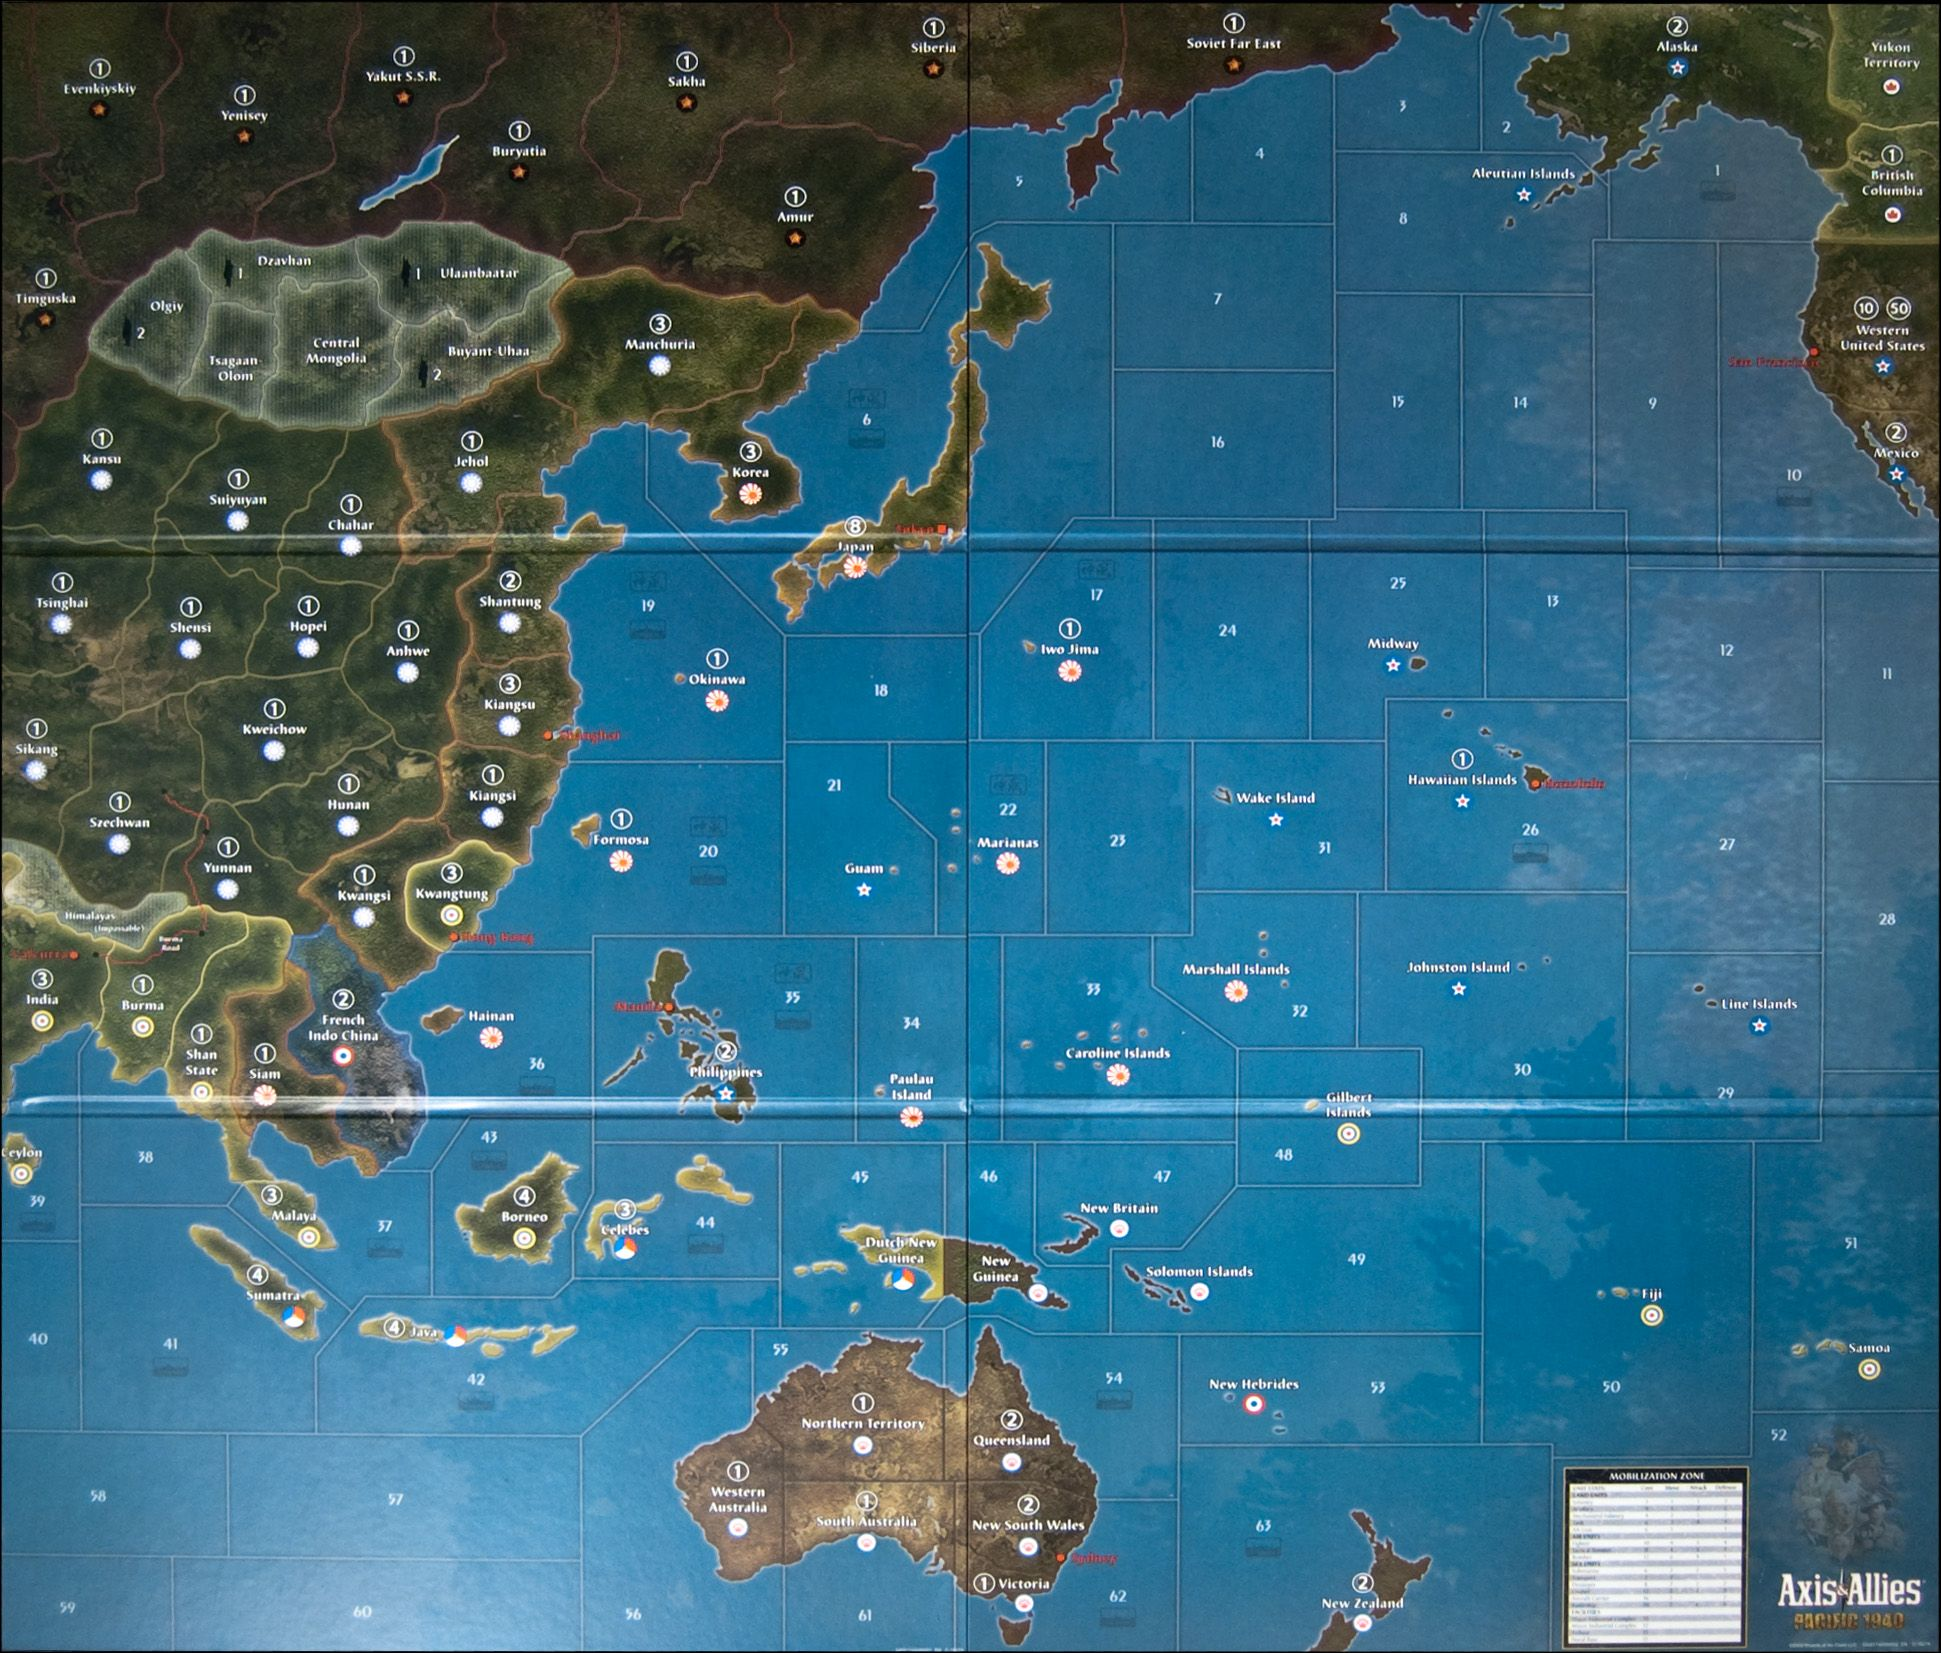 Axis And Allies Pacific Map Large Axis and Allies Maps | Image: Axis & Allies Pacific 1940 Map